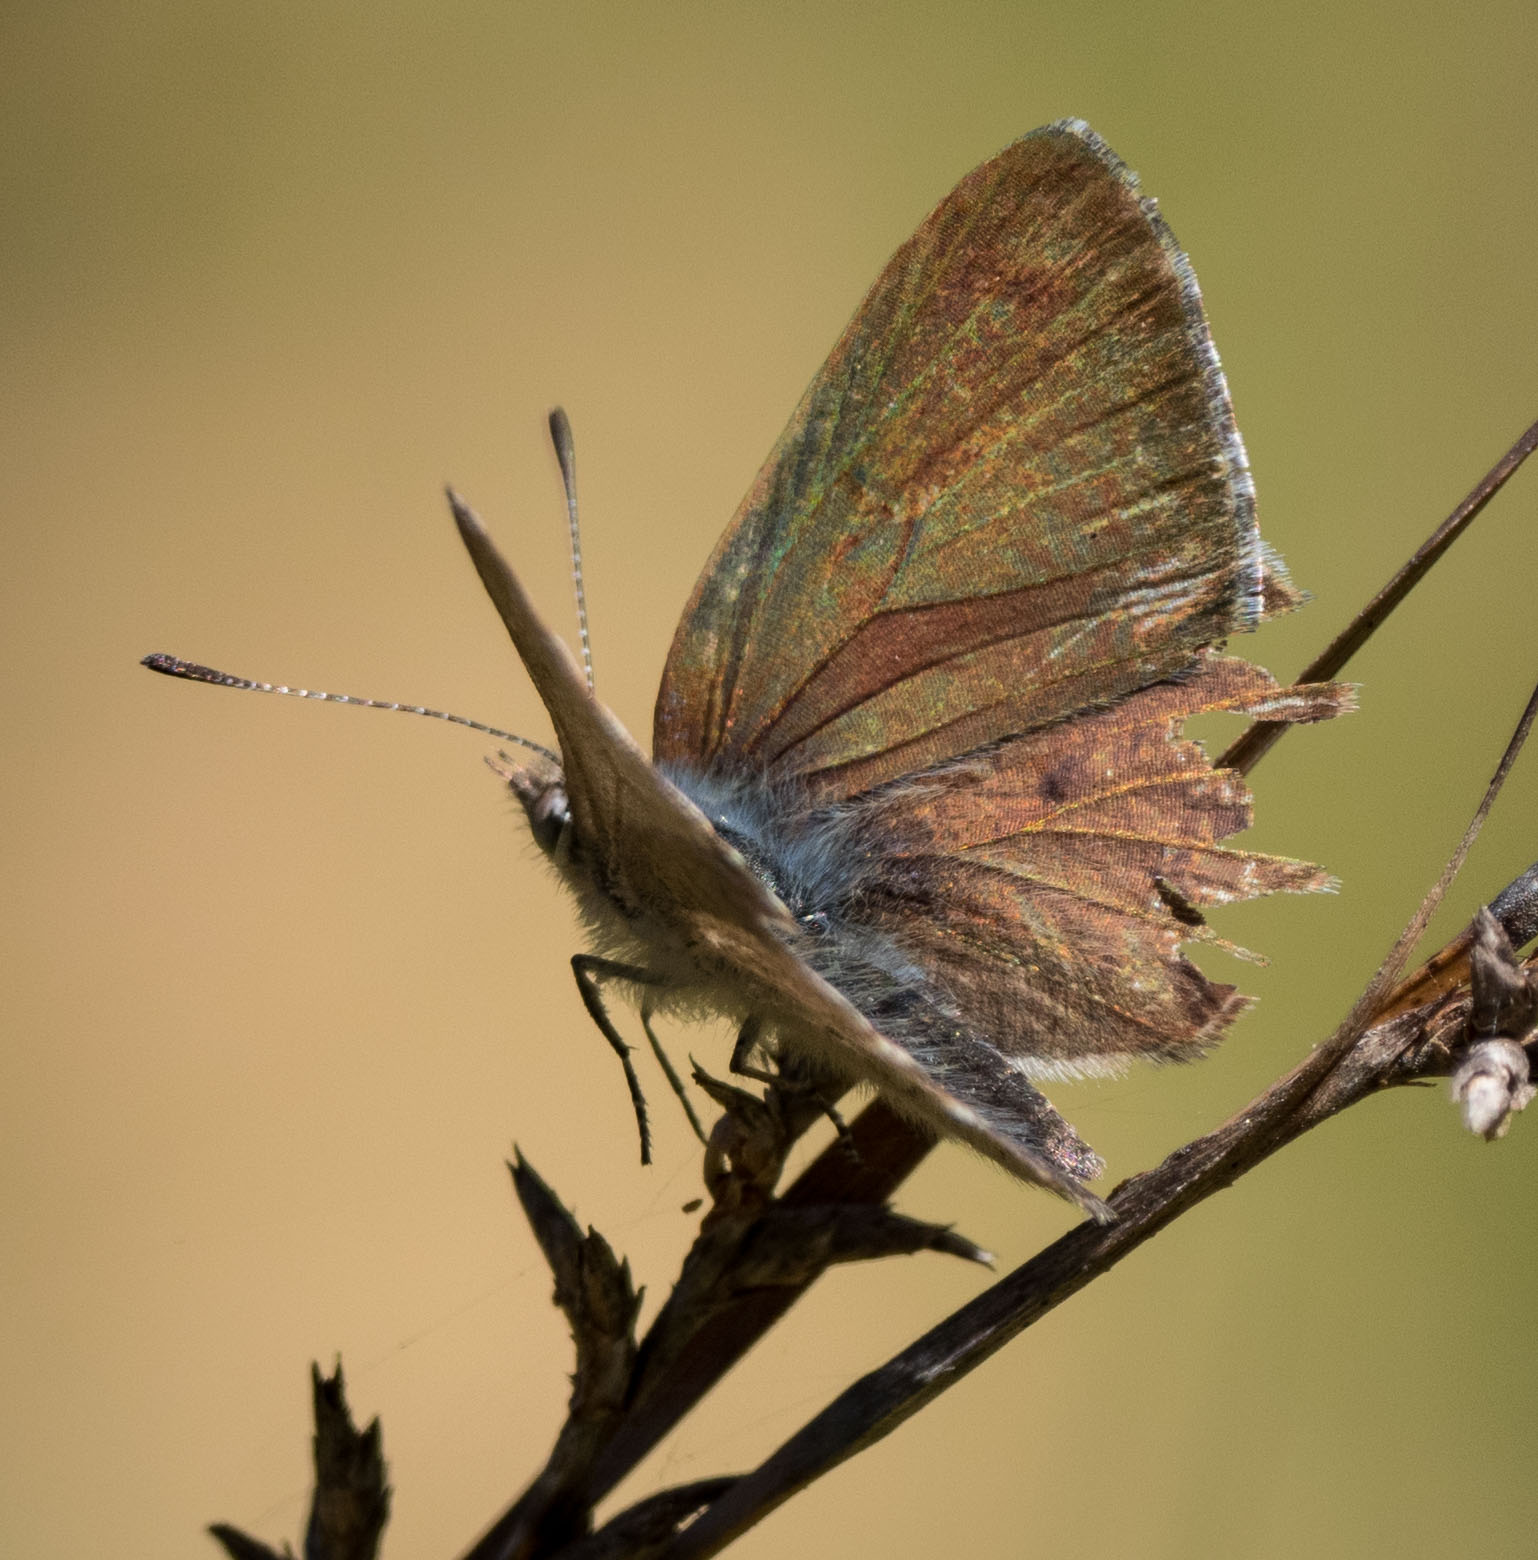 Varied Dusky-blue ( Candalides hyacinthinus ) - same individual as in previous image